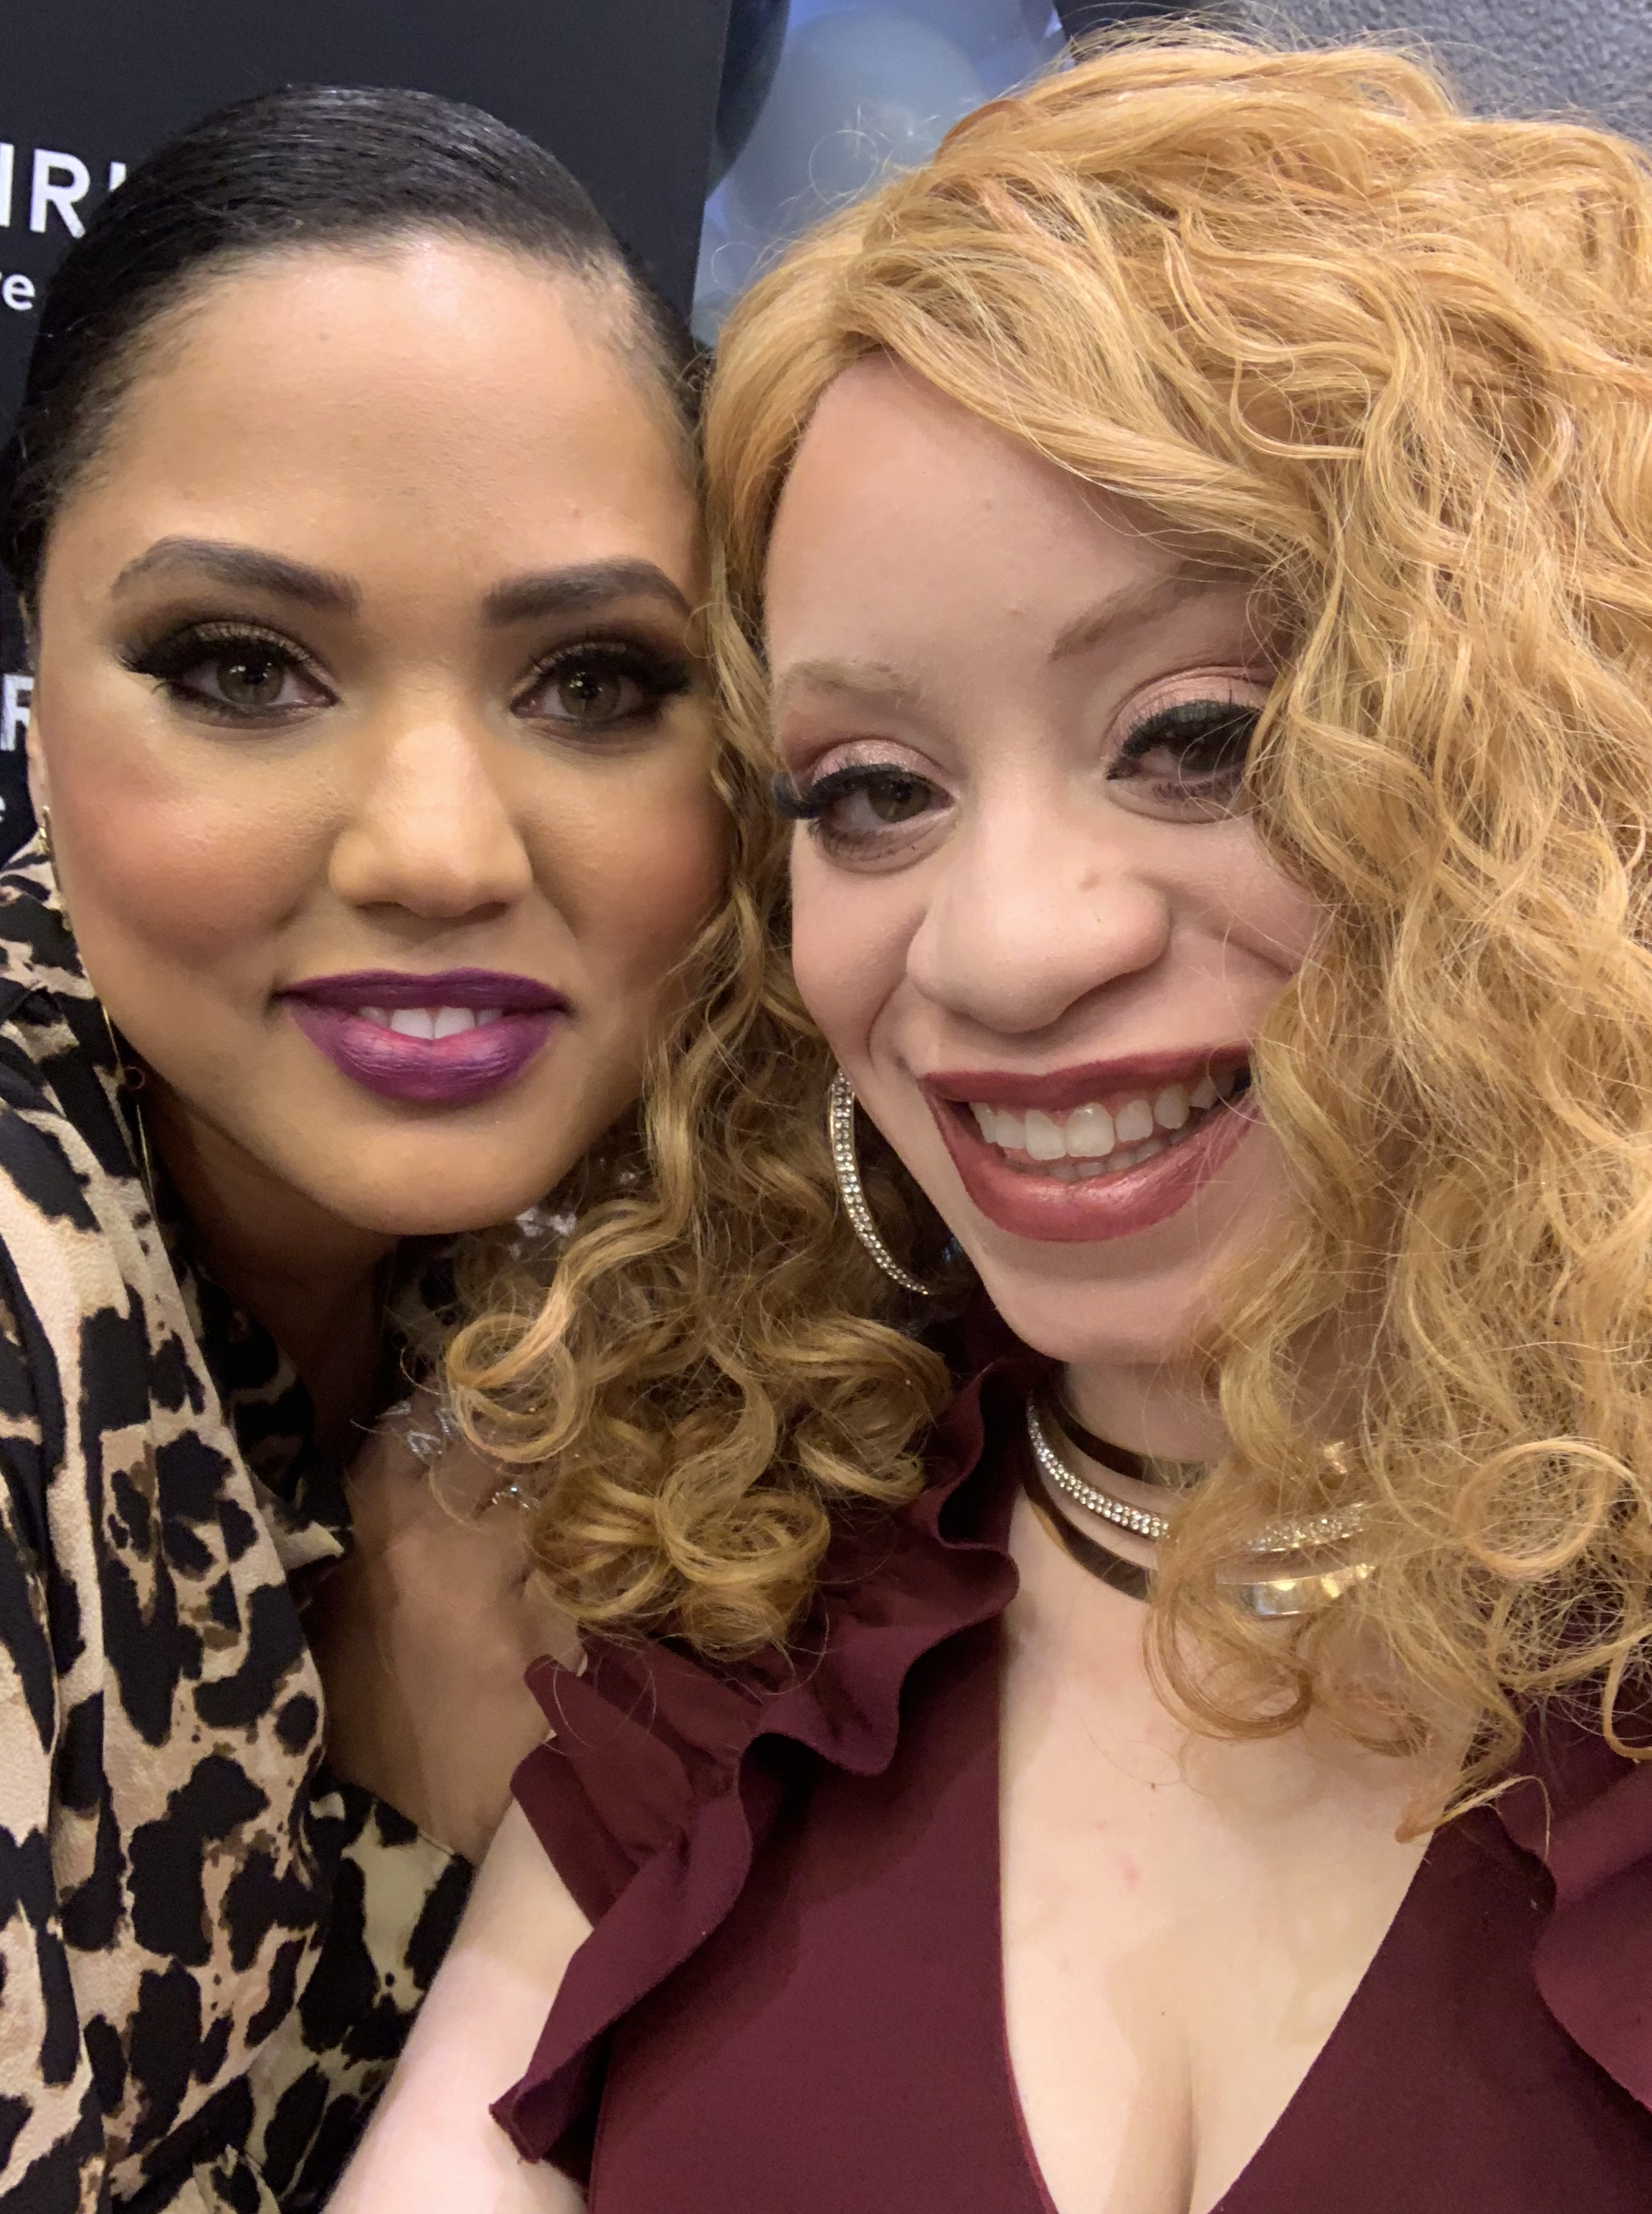 Ayesha Curry is wearing bright fuchsia lipstick and leopard print top. She is pictured next to J Renée.